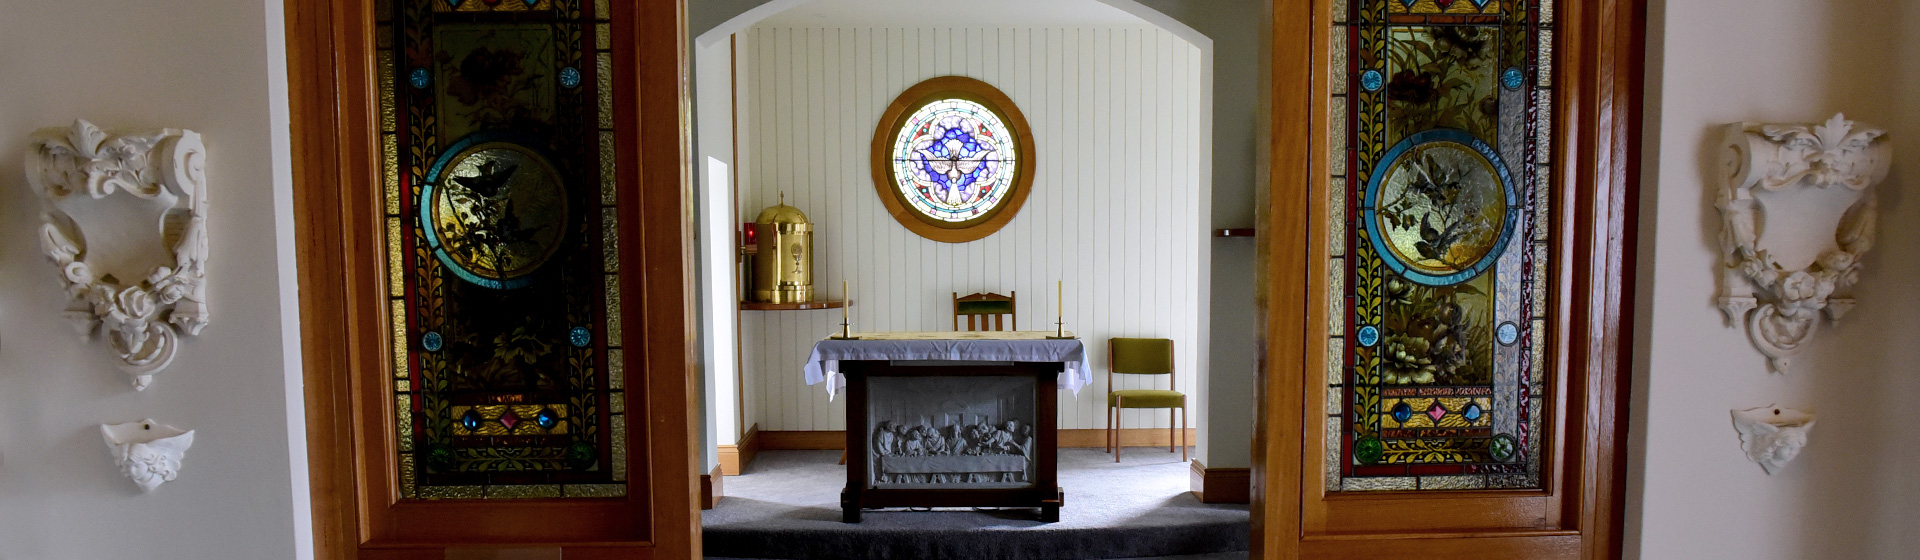 Multi-faith catholic chapel for quiet reflection